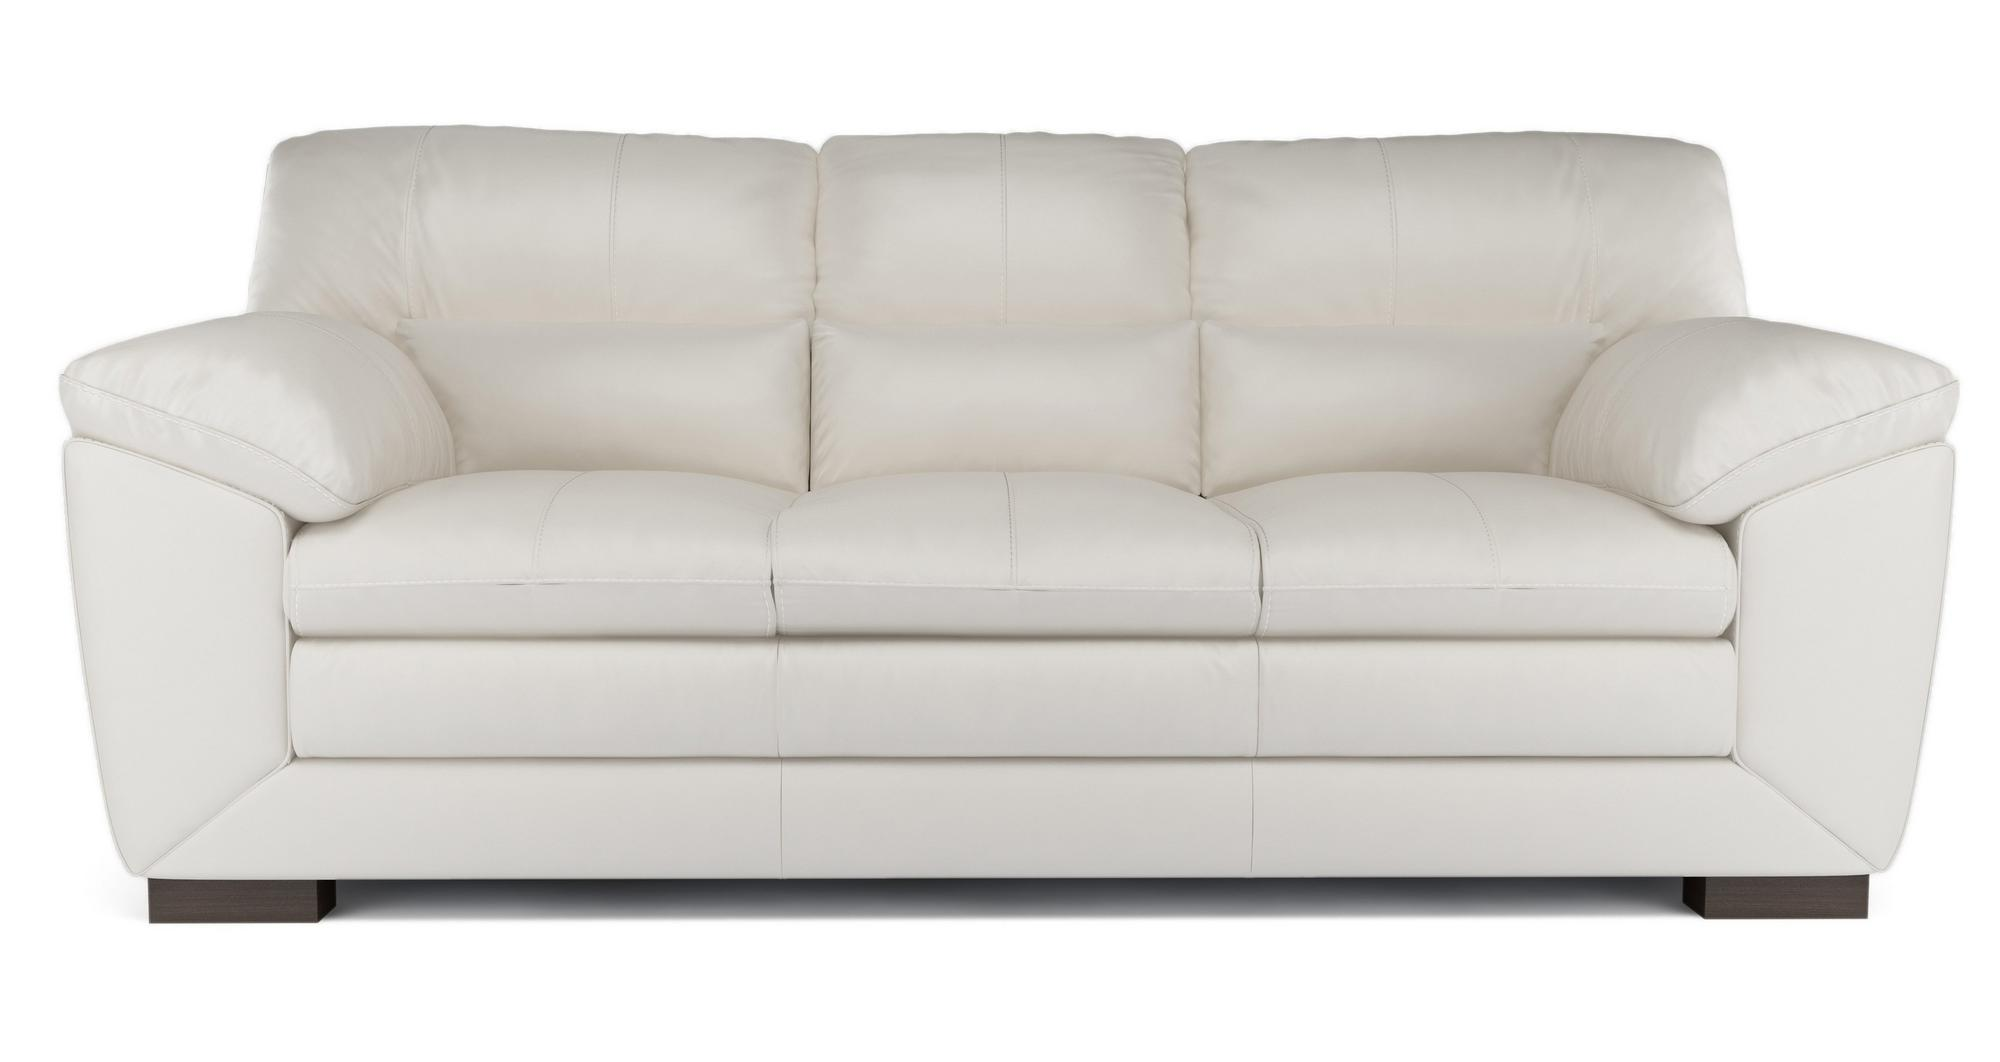 Dfs New Valiant Aspen White Leather 3 Amp 2 Seater Sofas Ebay